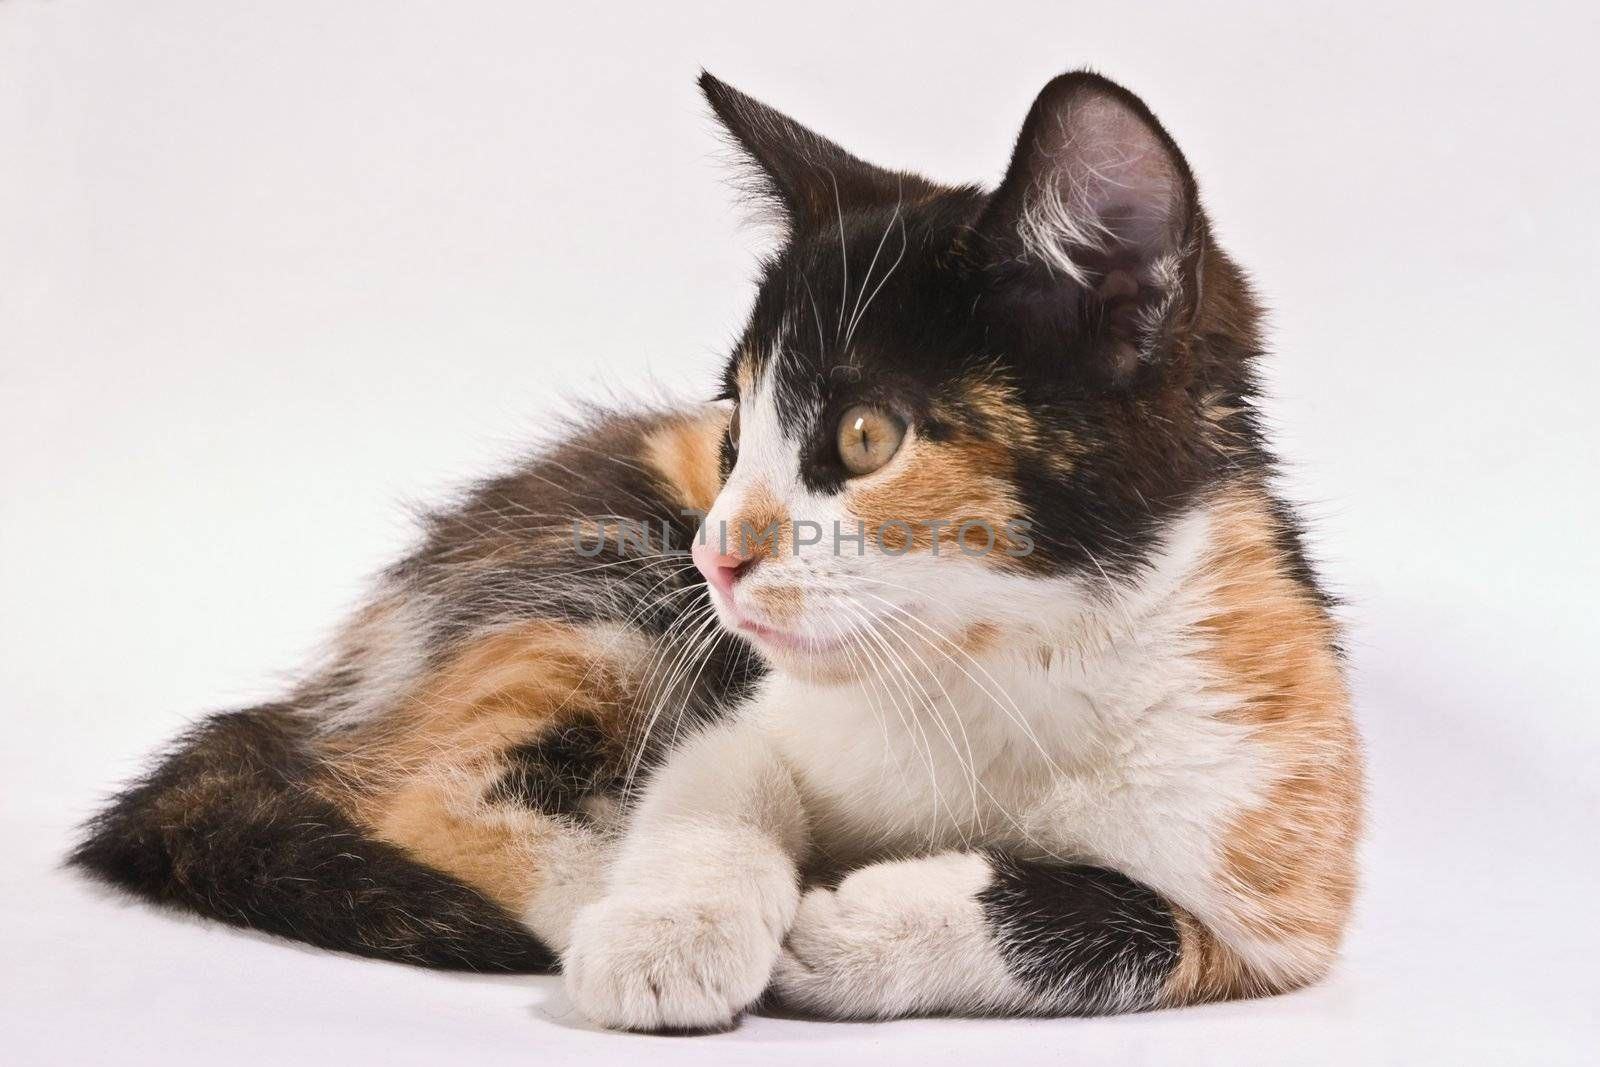 pets series: small fluffy kitten over white